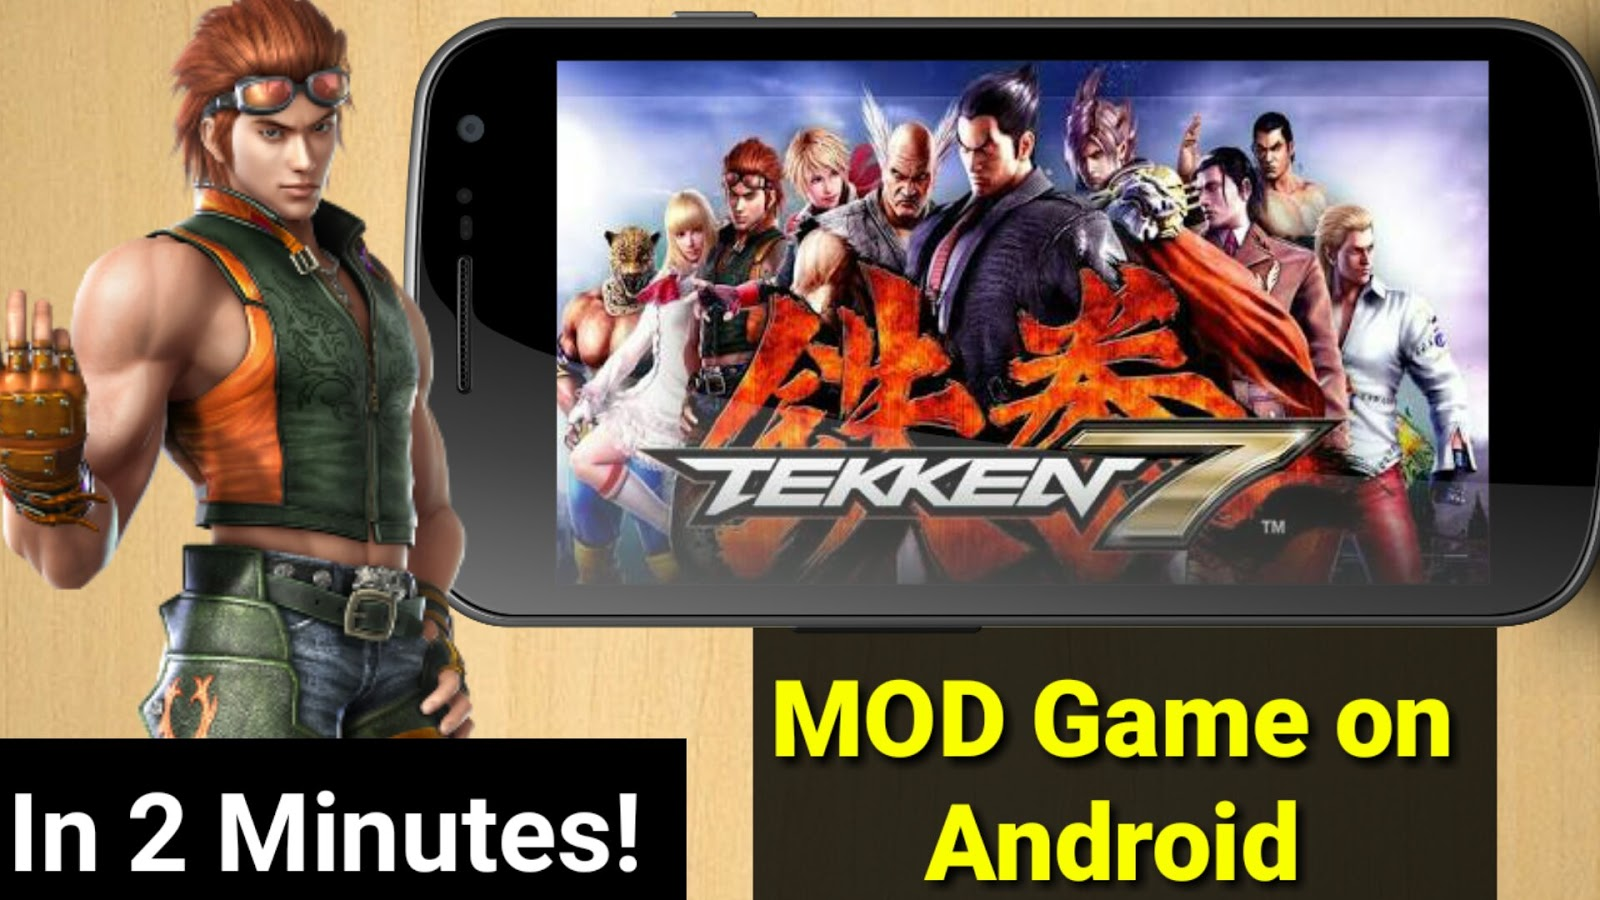 How to Download Tekken 7 for Android